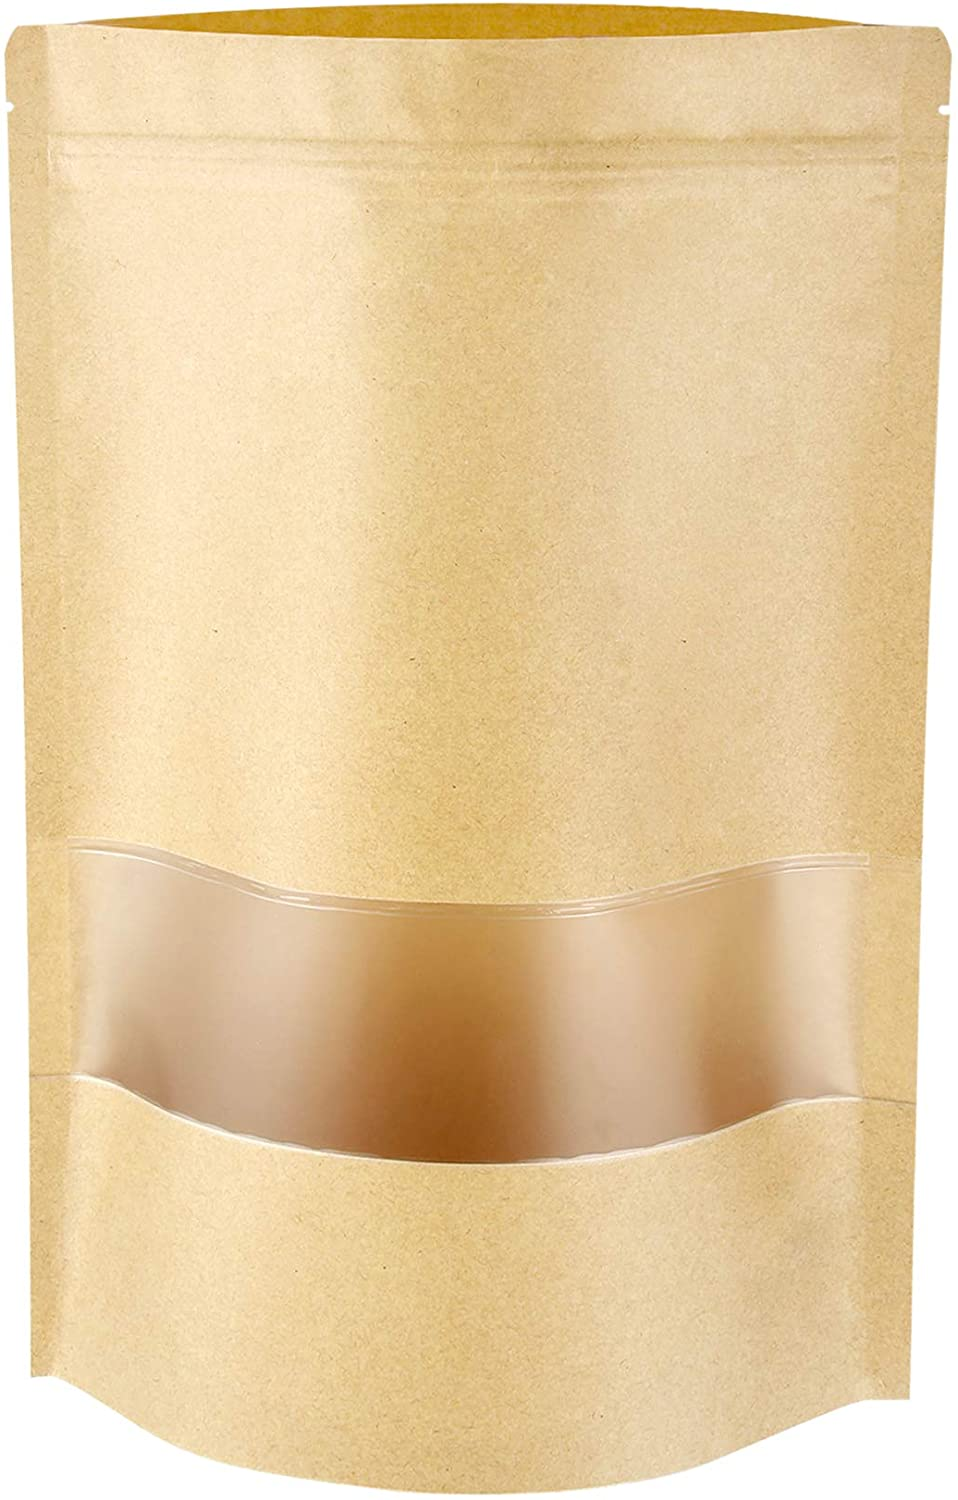 Stand Up Pouch Bags, 100 Pack Kraft Pouch with Tear Notch and Matte Window, Resealable Zip Lock Food Storage Bag (4.7IN X 7.9IN)